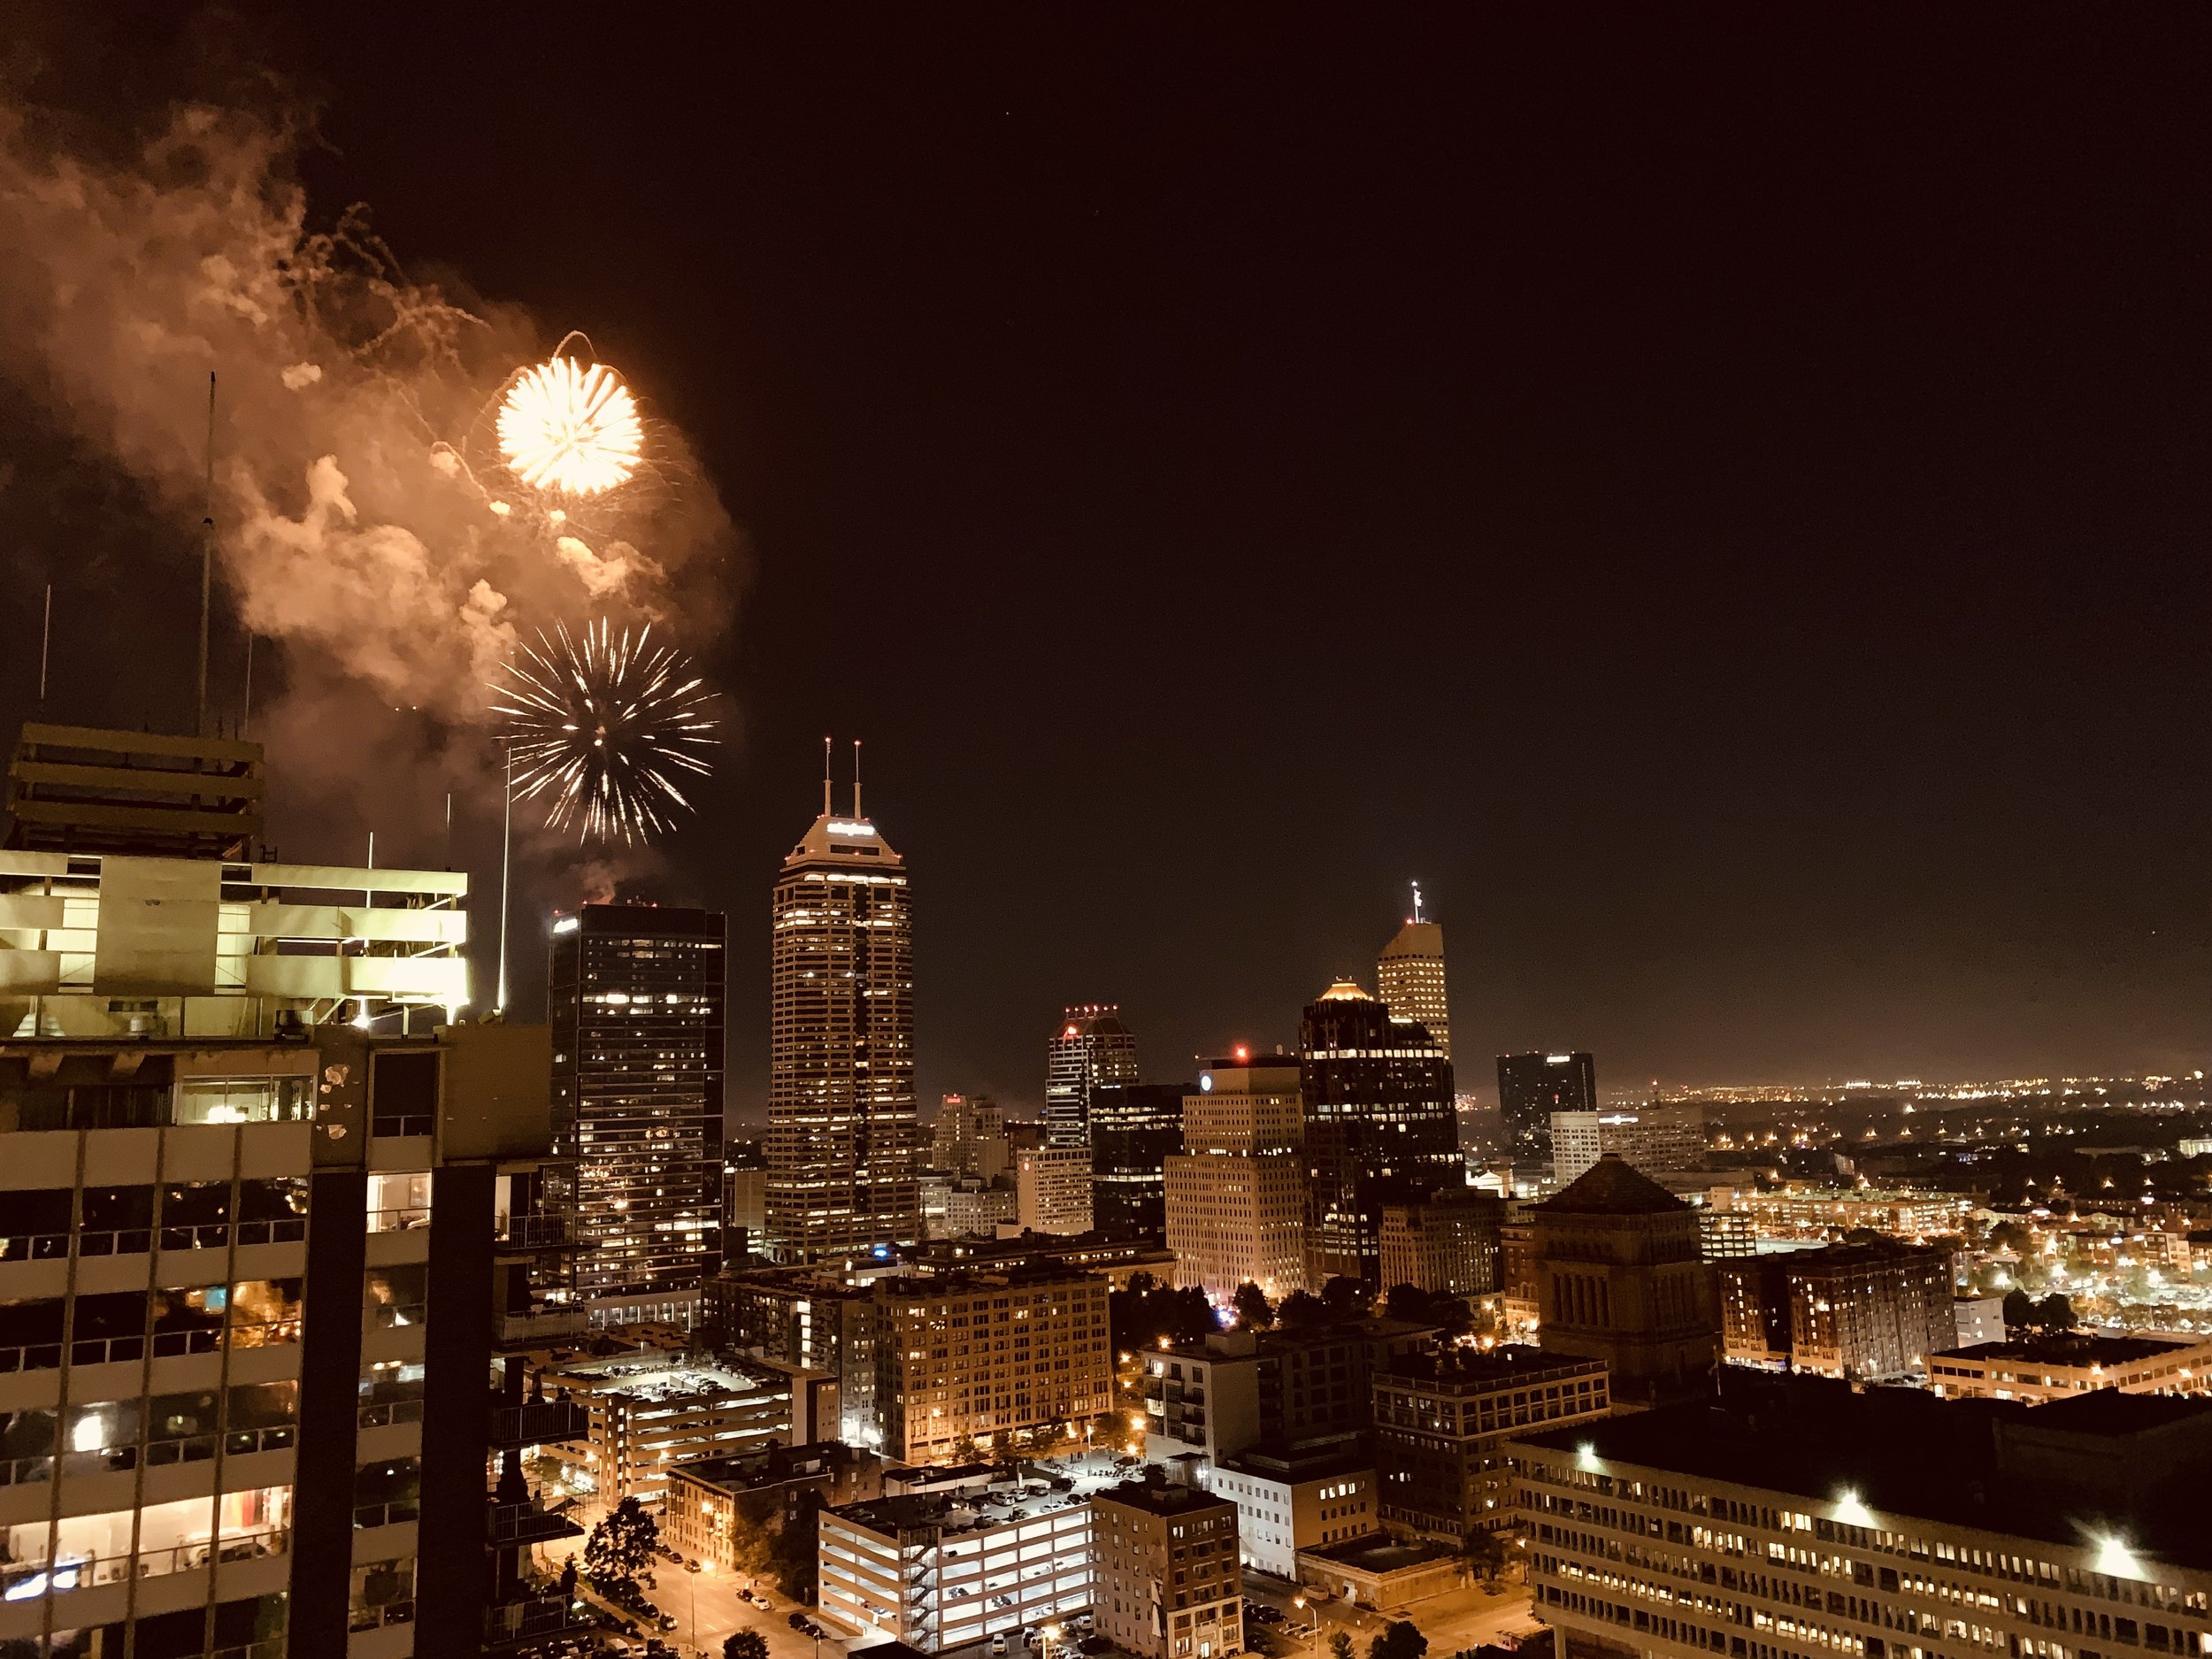 View of the fireworks from the top floor of the Riley Tower